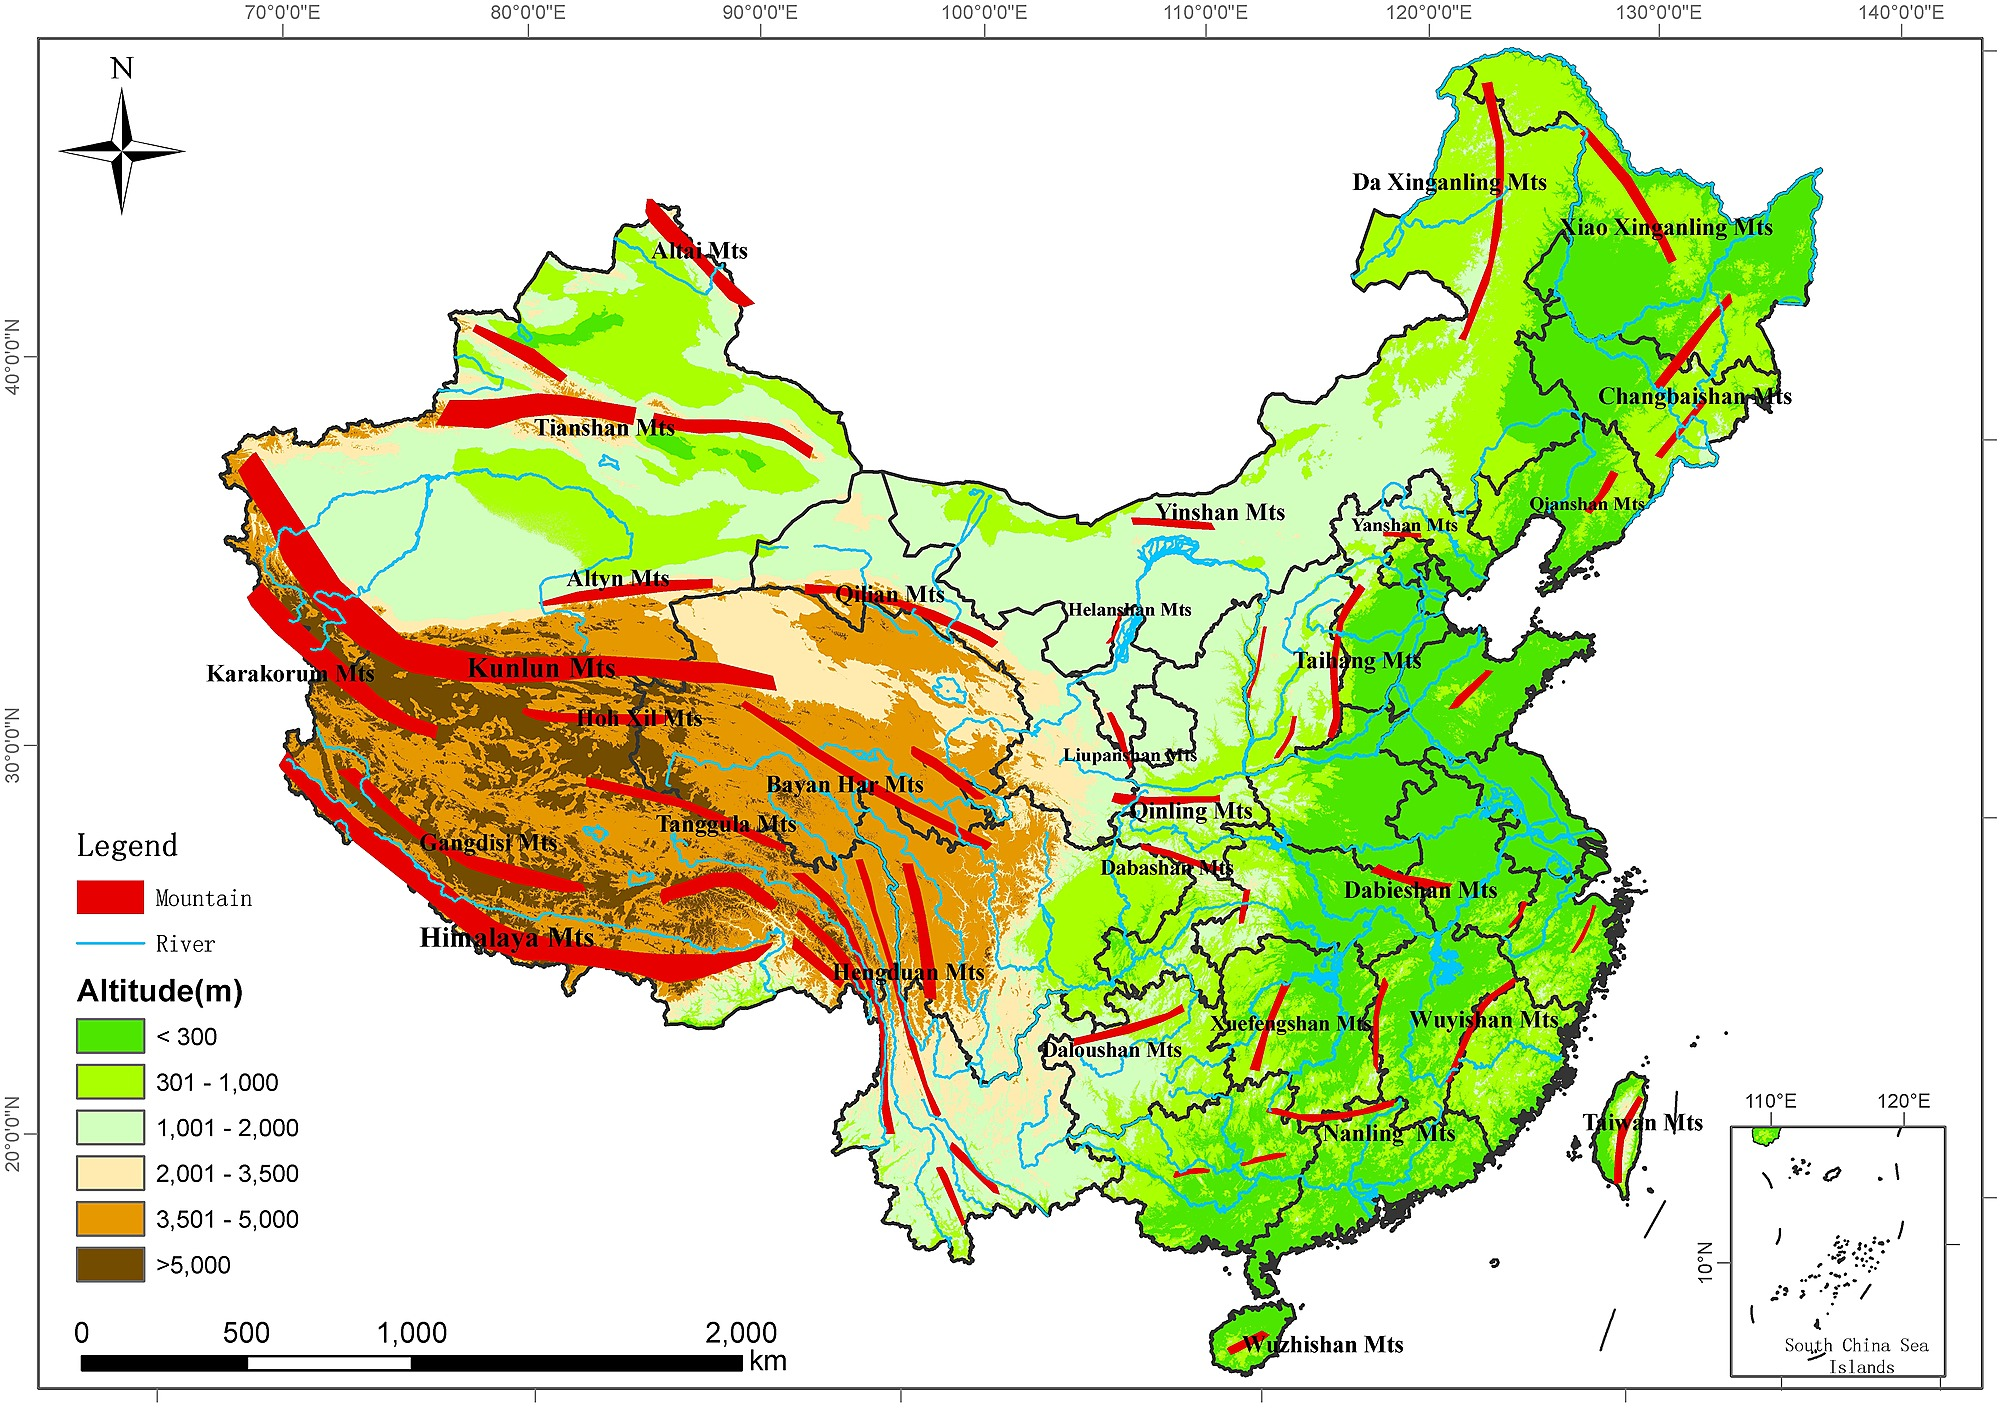 Image of: Sketch Map Of China Showing Elevation And Major Mountain Ranges